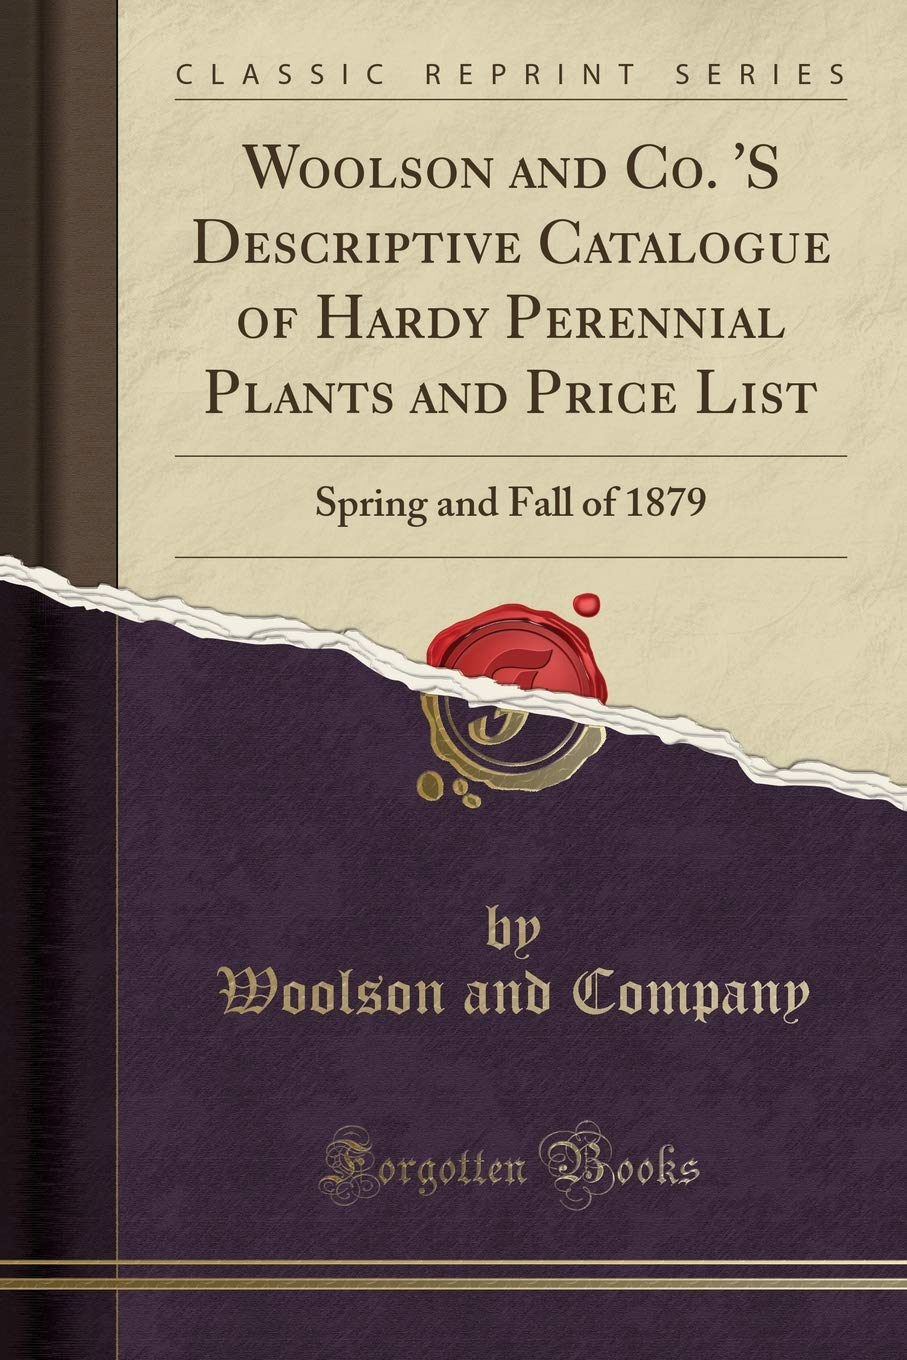 Download Woolson and Co. 'S Descriptive Catalogue of Hardy Perennial Plants and Price List: Spring and Fall of 1879 (Classic Reprint) pdf epub